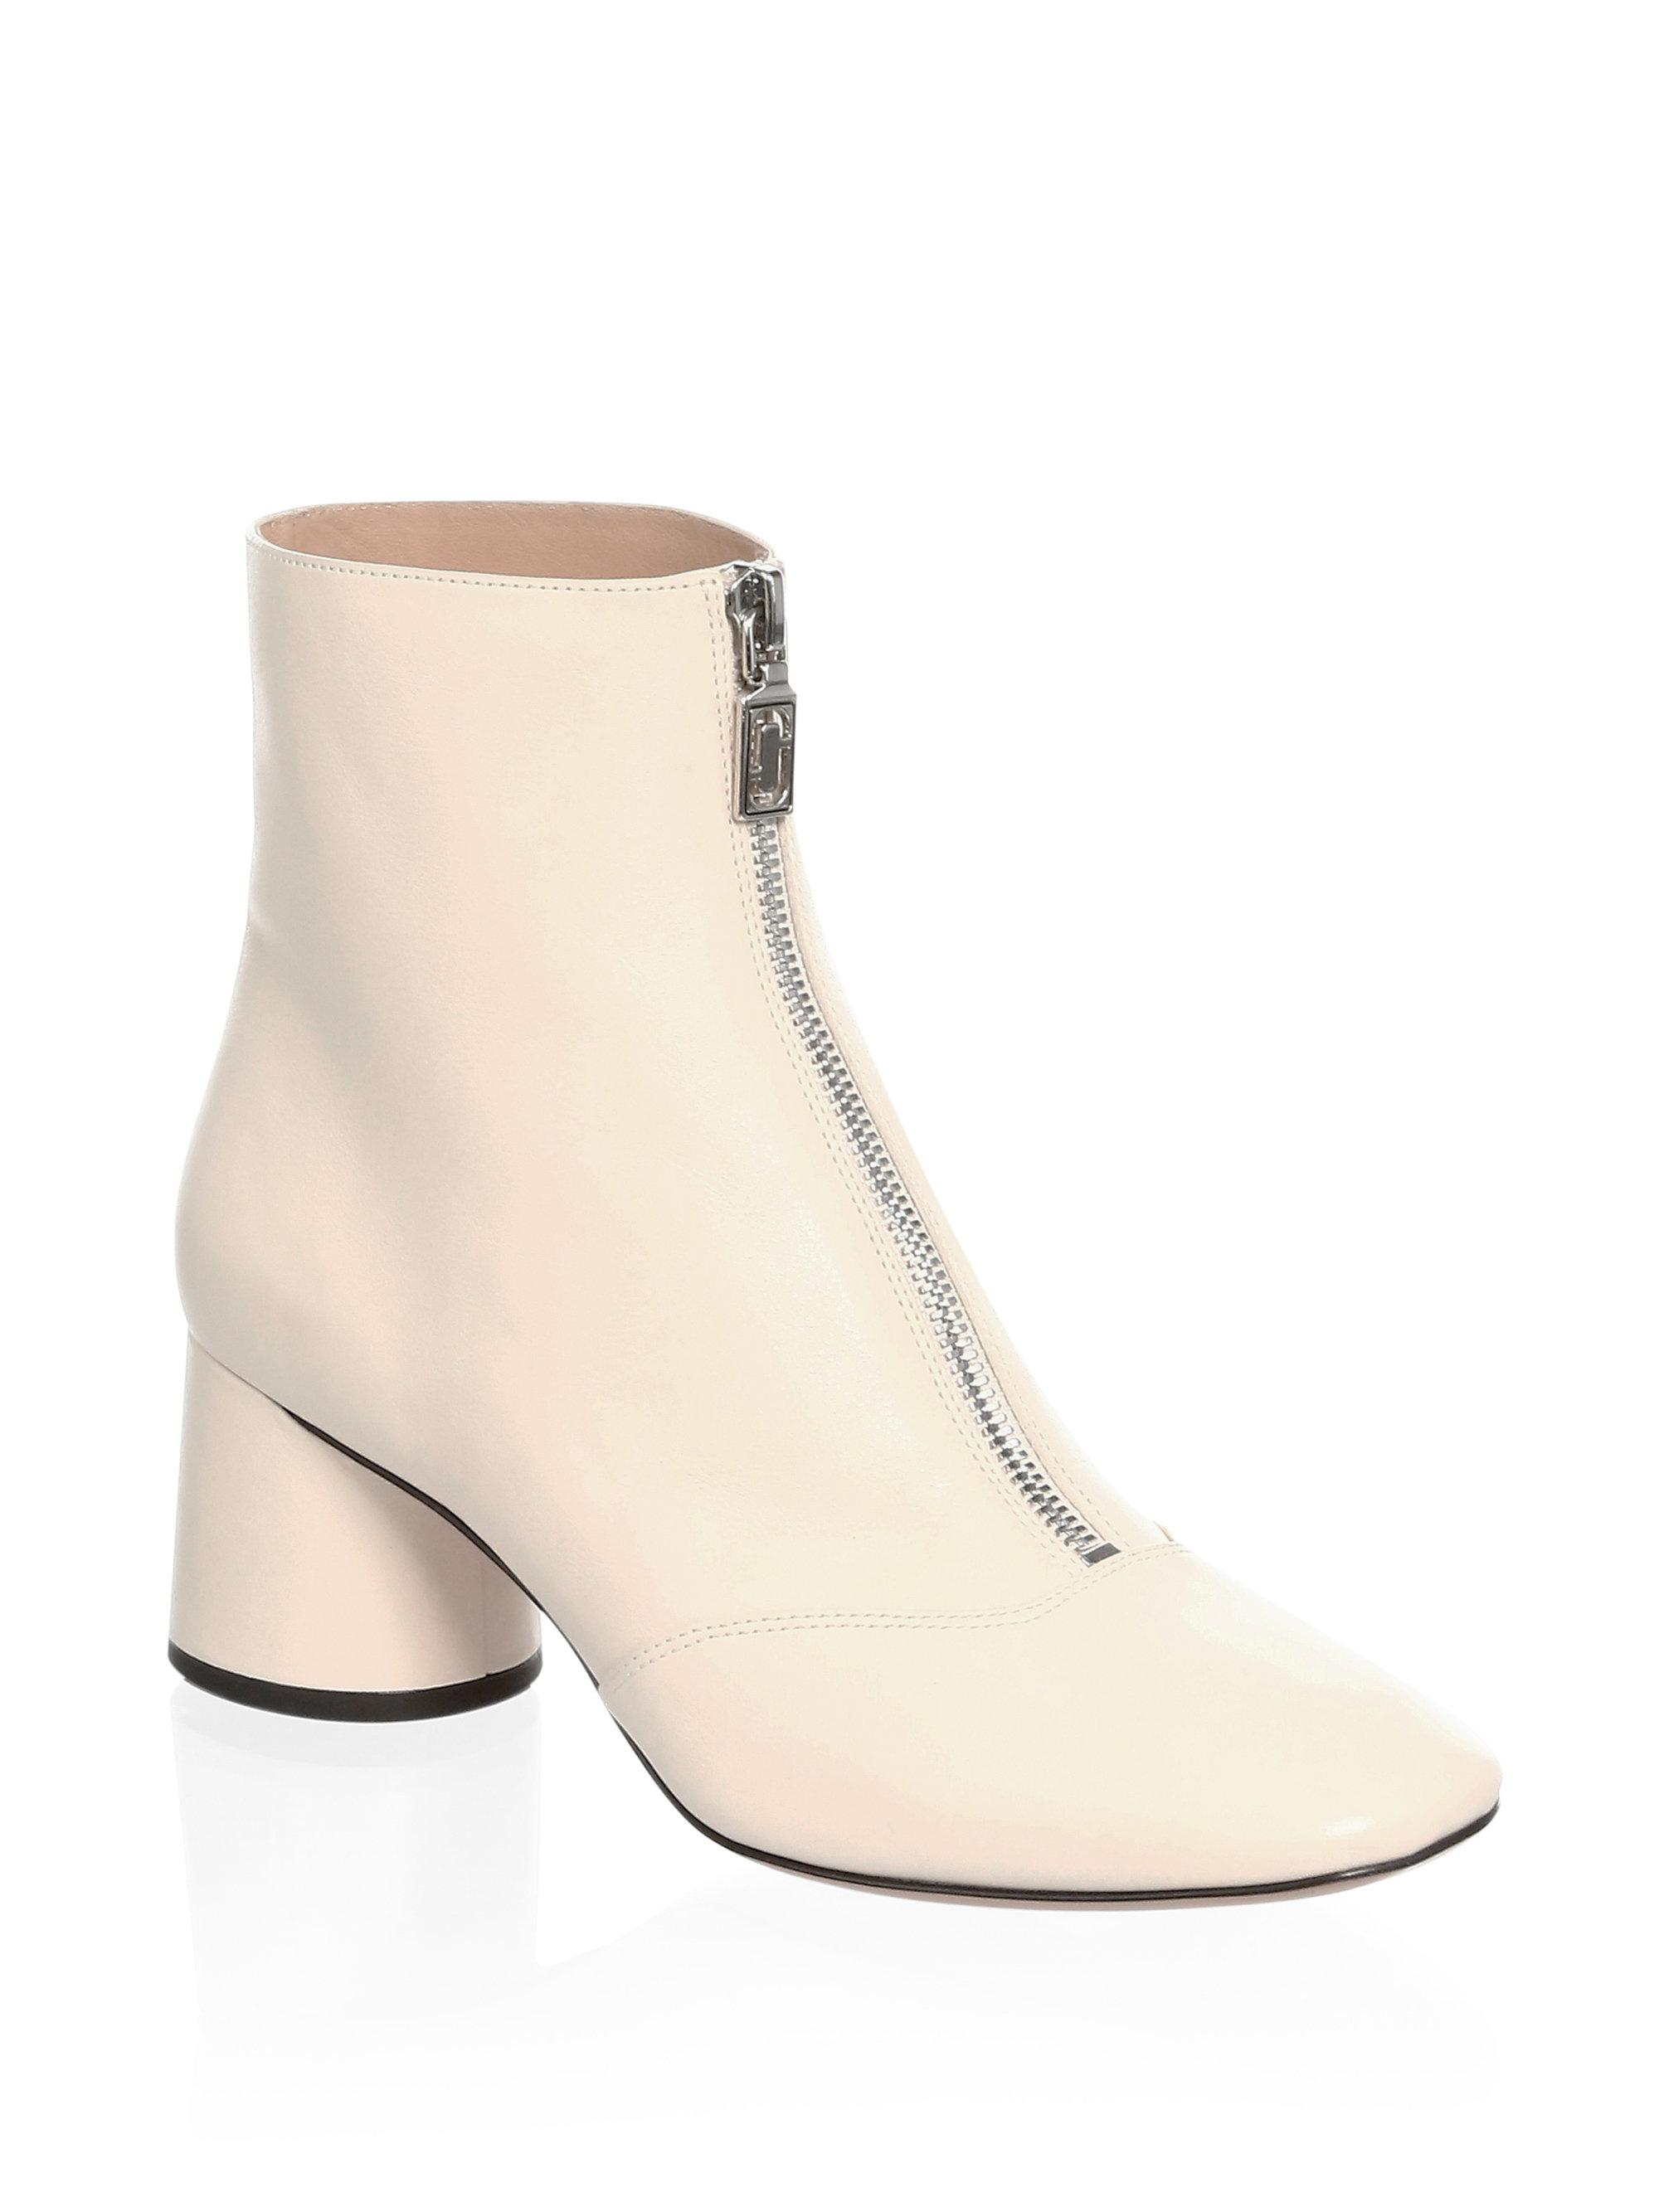 Marc Jacobs Natalie Front Zip Ankle Boots yf5Xkrth